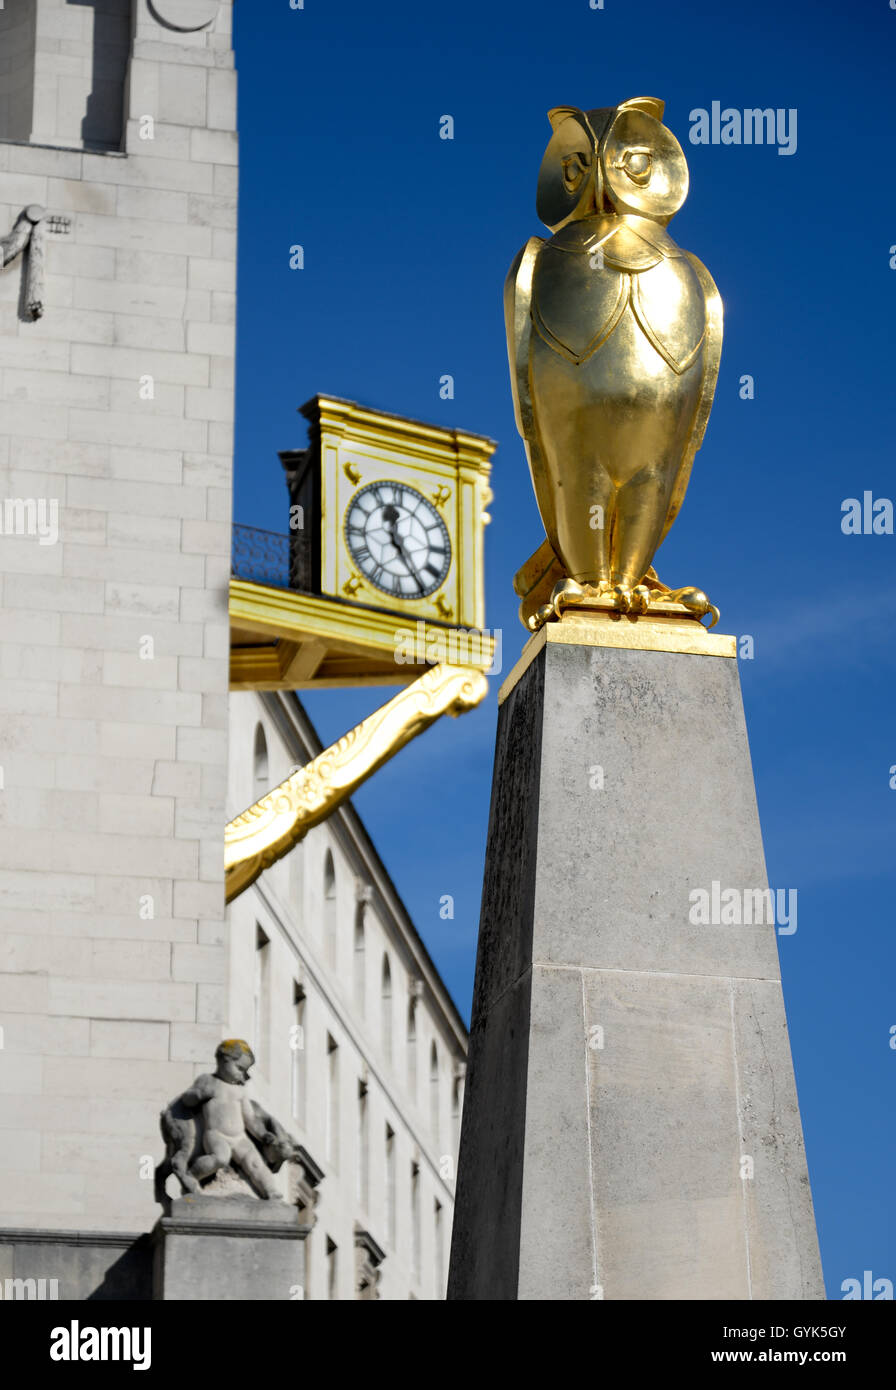 Golden owl sculpure by John Thorp and gold clock on the Civic Hall building in the Millennium Square, Leeds - Stock Image